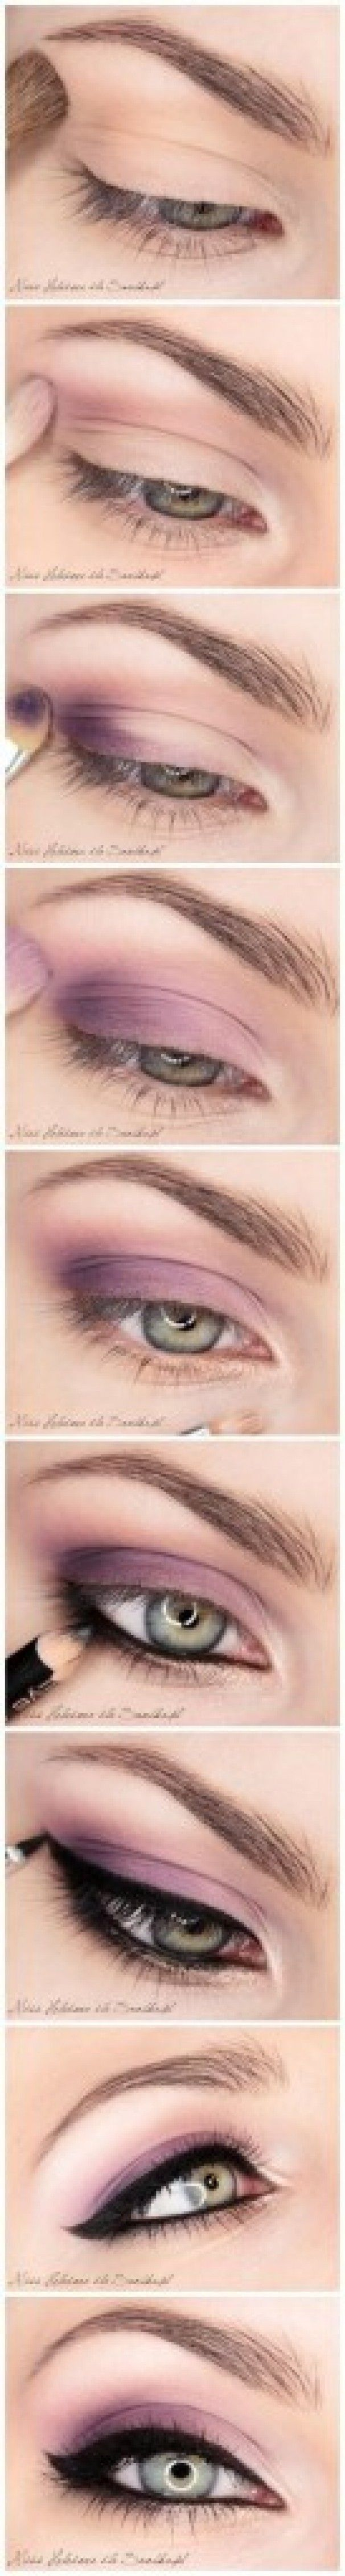 best pretty stiches and flowey things images on pinterest hair